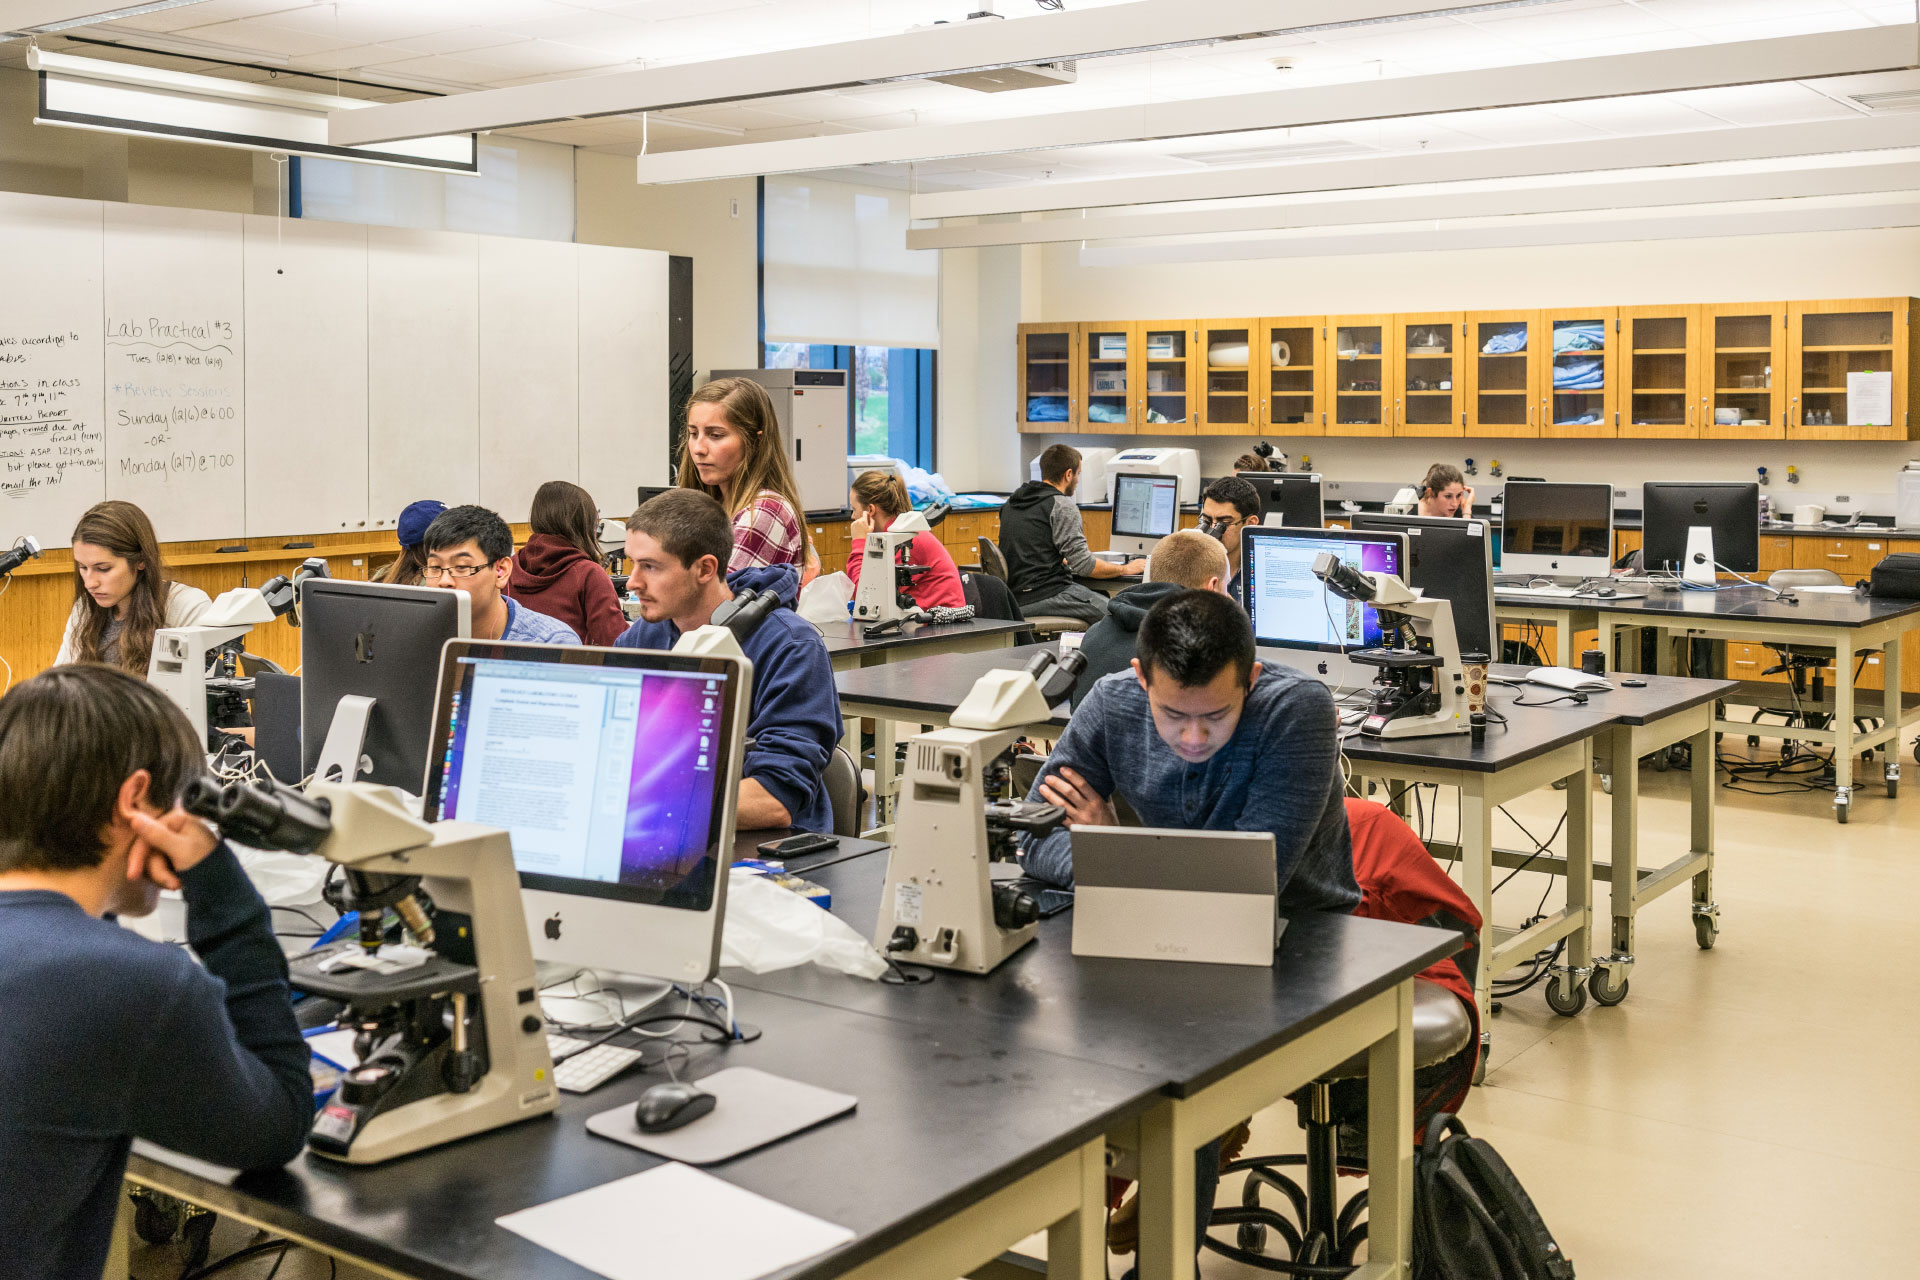 Students working in a lab with computers